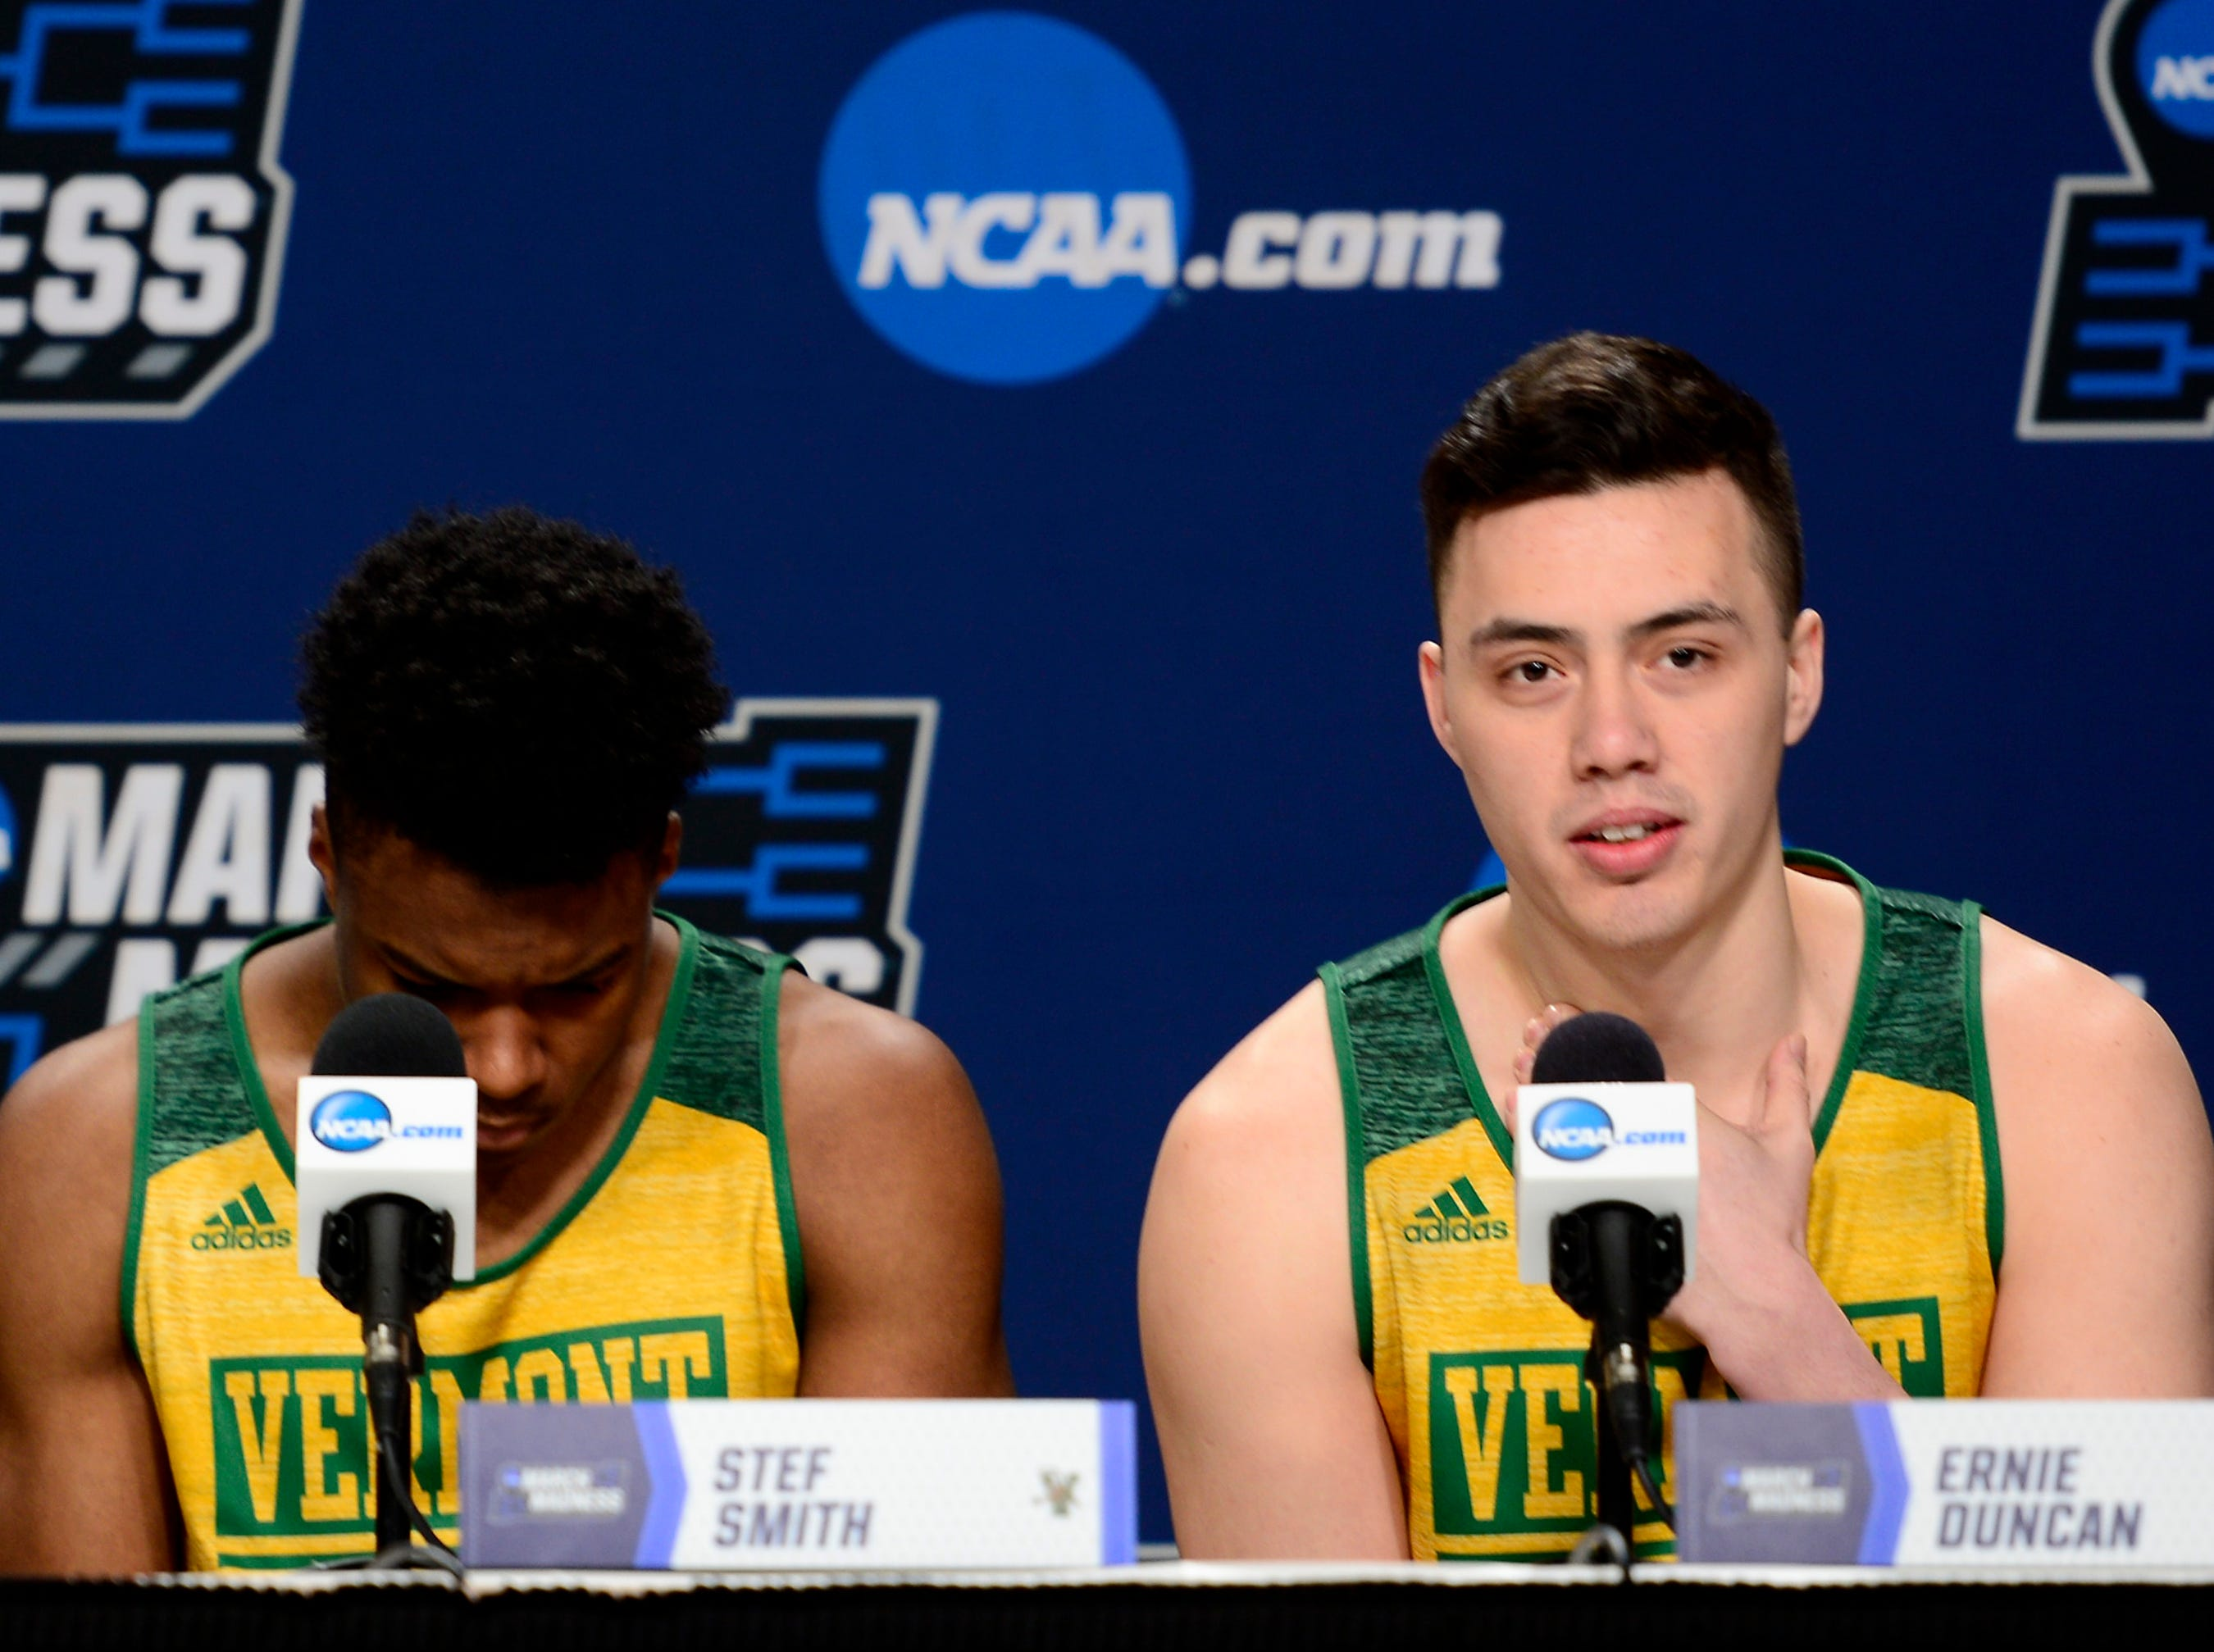 Vermont's Ernie Duncan, right, answers a question from the media before Wednesday's NCAA tournament practice at the XL Center in Hartford, Connecticut.